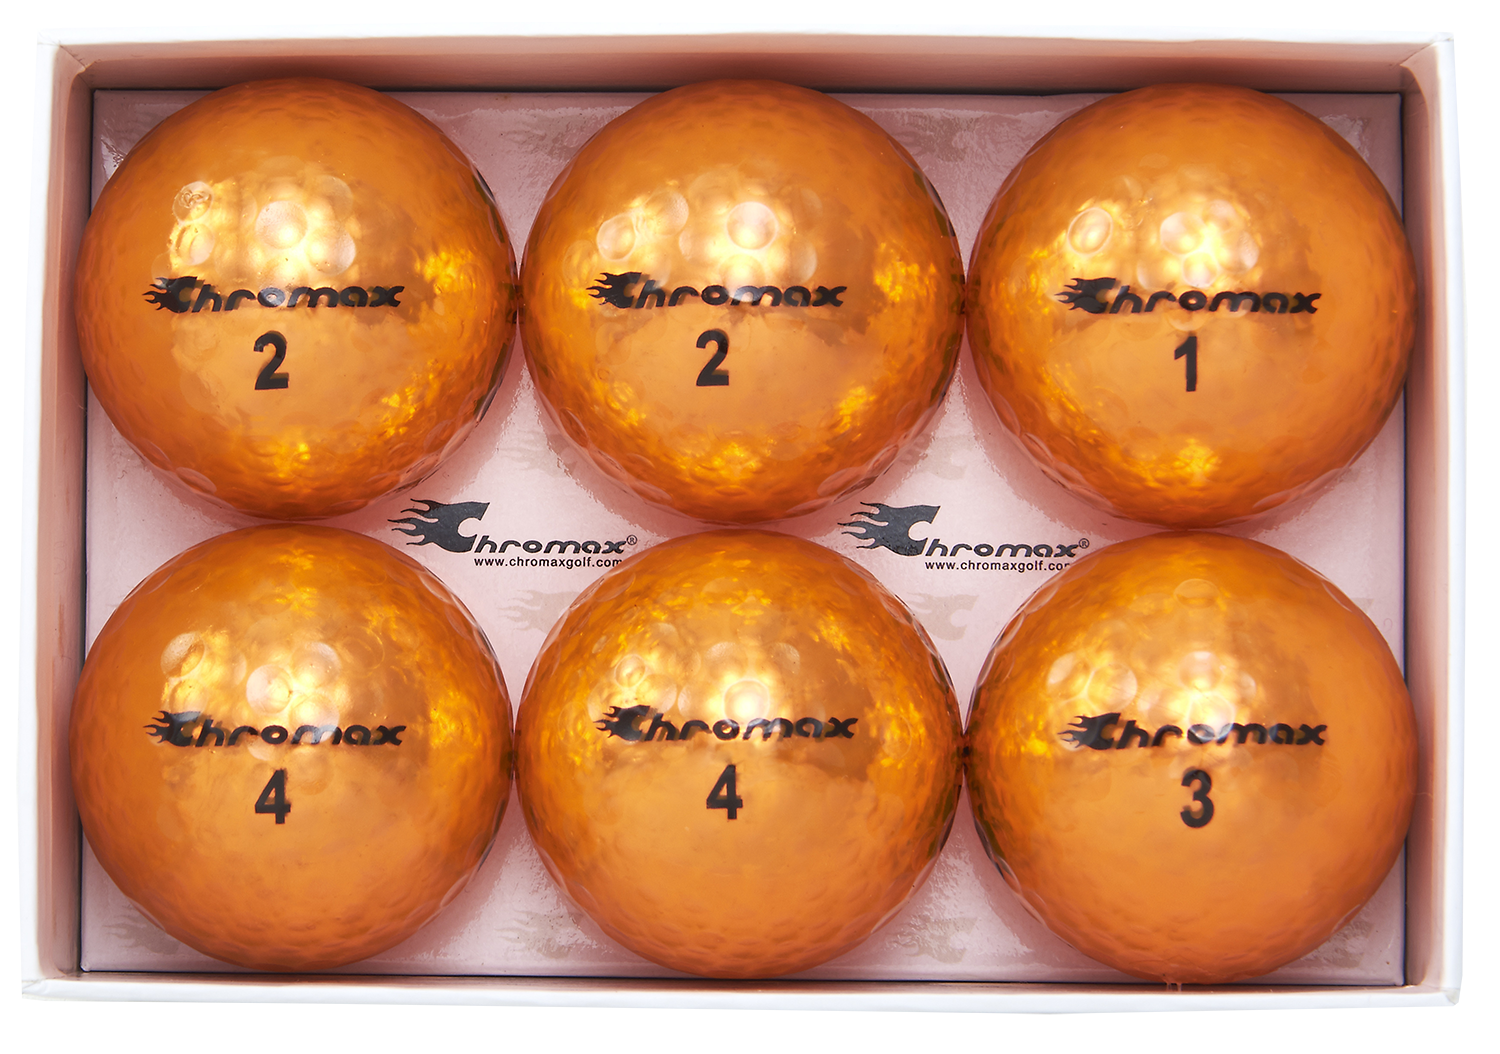 Chromax orange golf ball M5 6-pack open